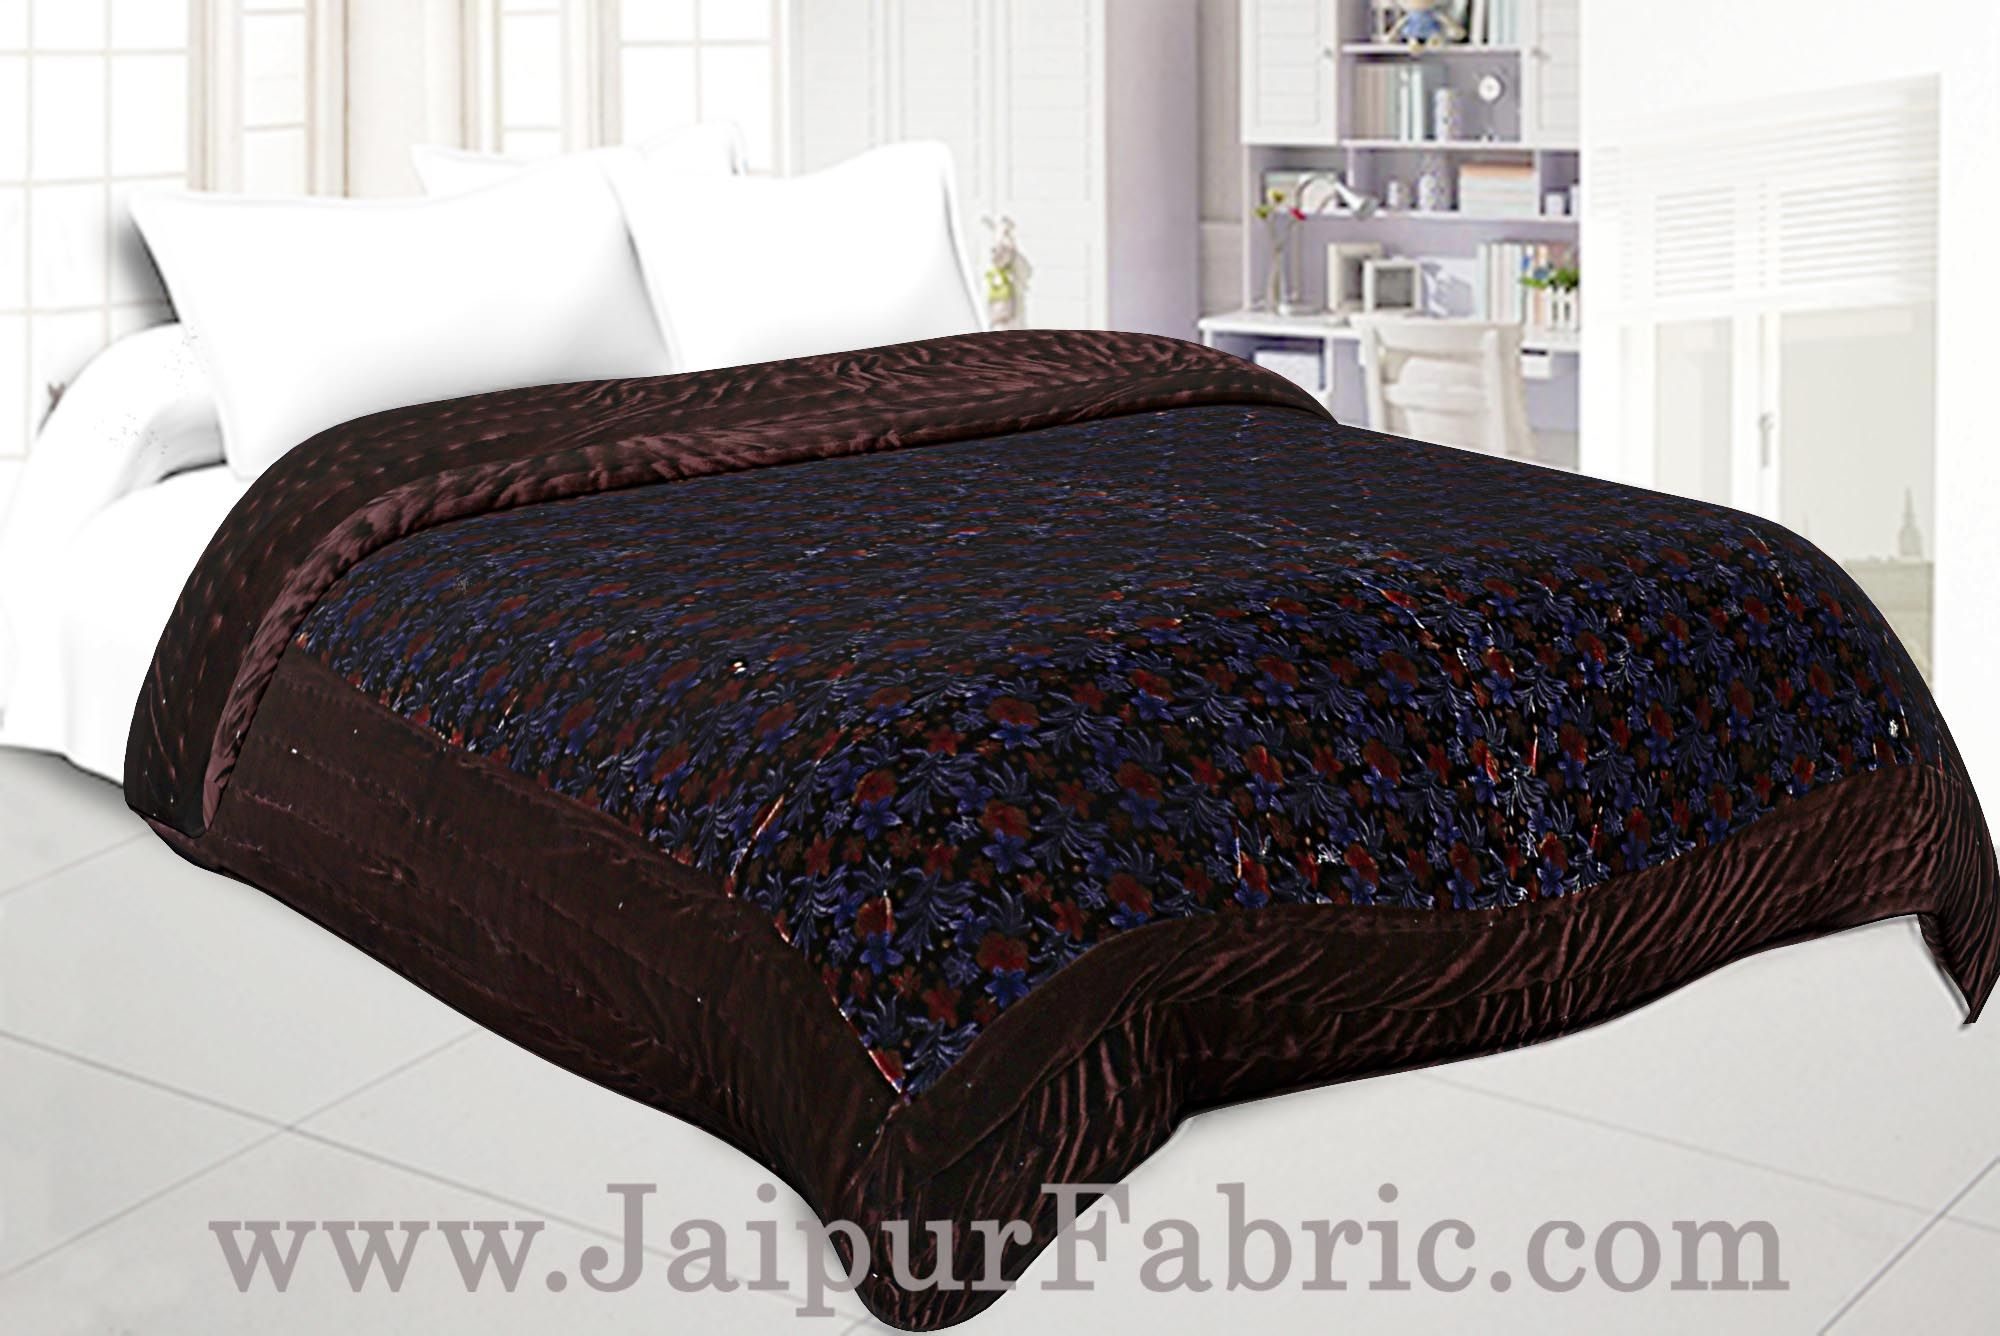 Jaipuri Hand Crafted Brown Smooth Touch  Floral Print Velvet Double Quilt